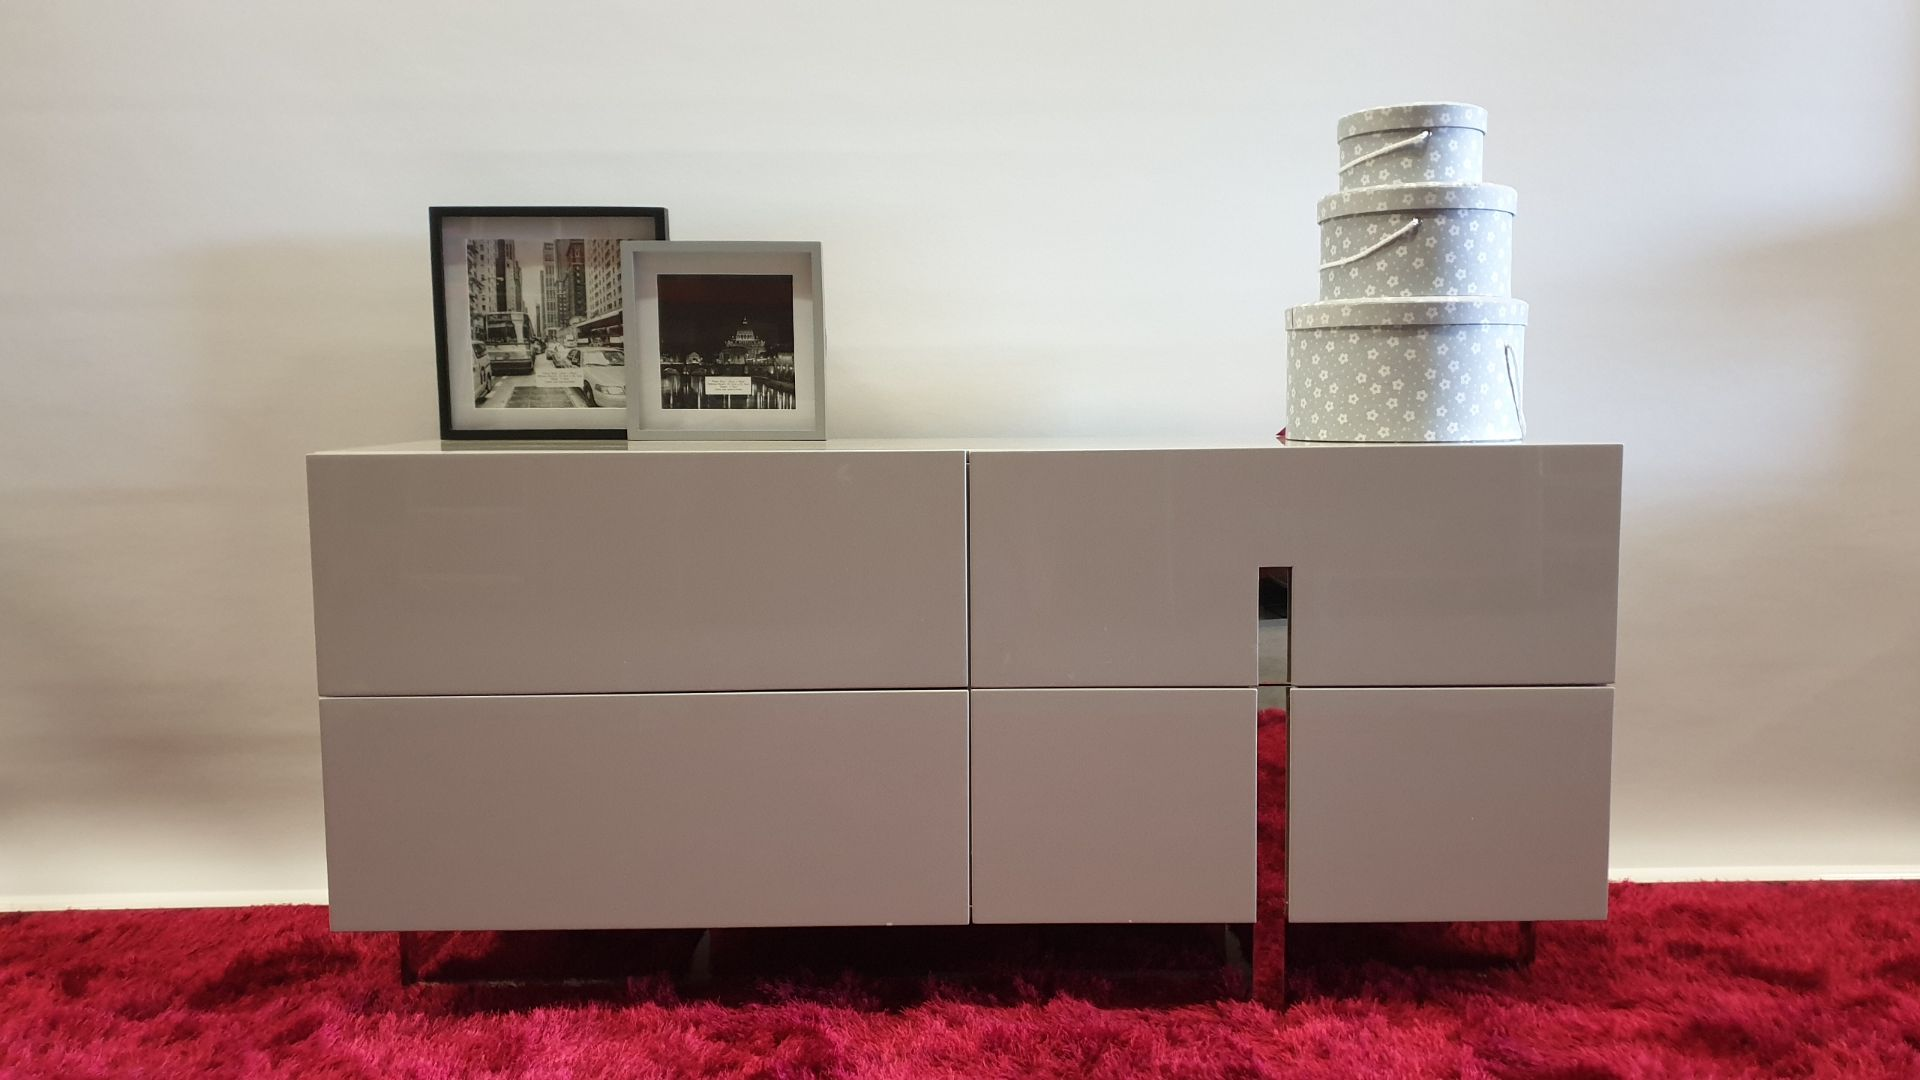 Lot 19 - BRAND NEW HIGH GLOSS AVORIO MDF 4 LARGE SOFT CLOSE DRAWER SIDE UNIT 1600 X 456 X 750MM RRP £549